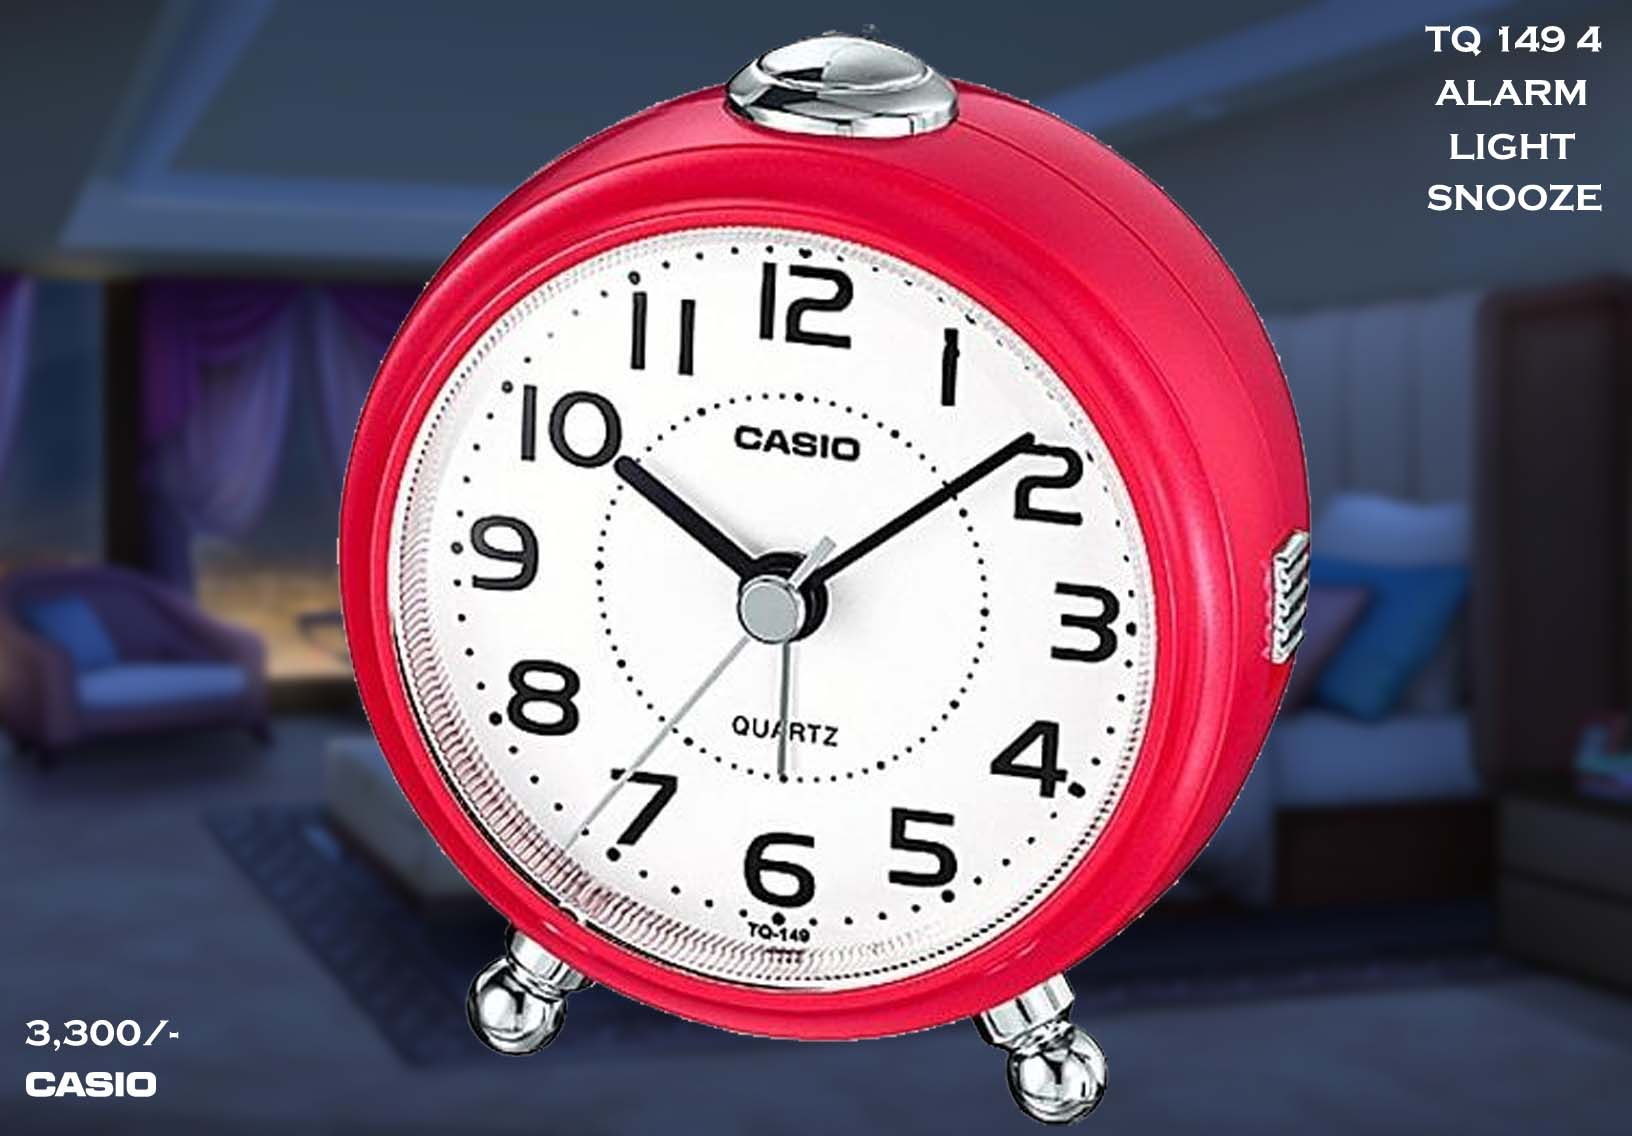 W Casio Alarm Clock TQ 149 4